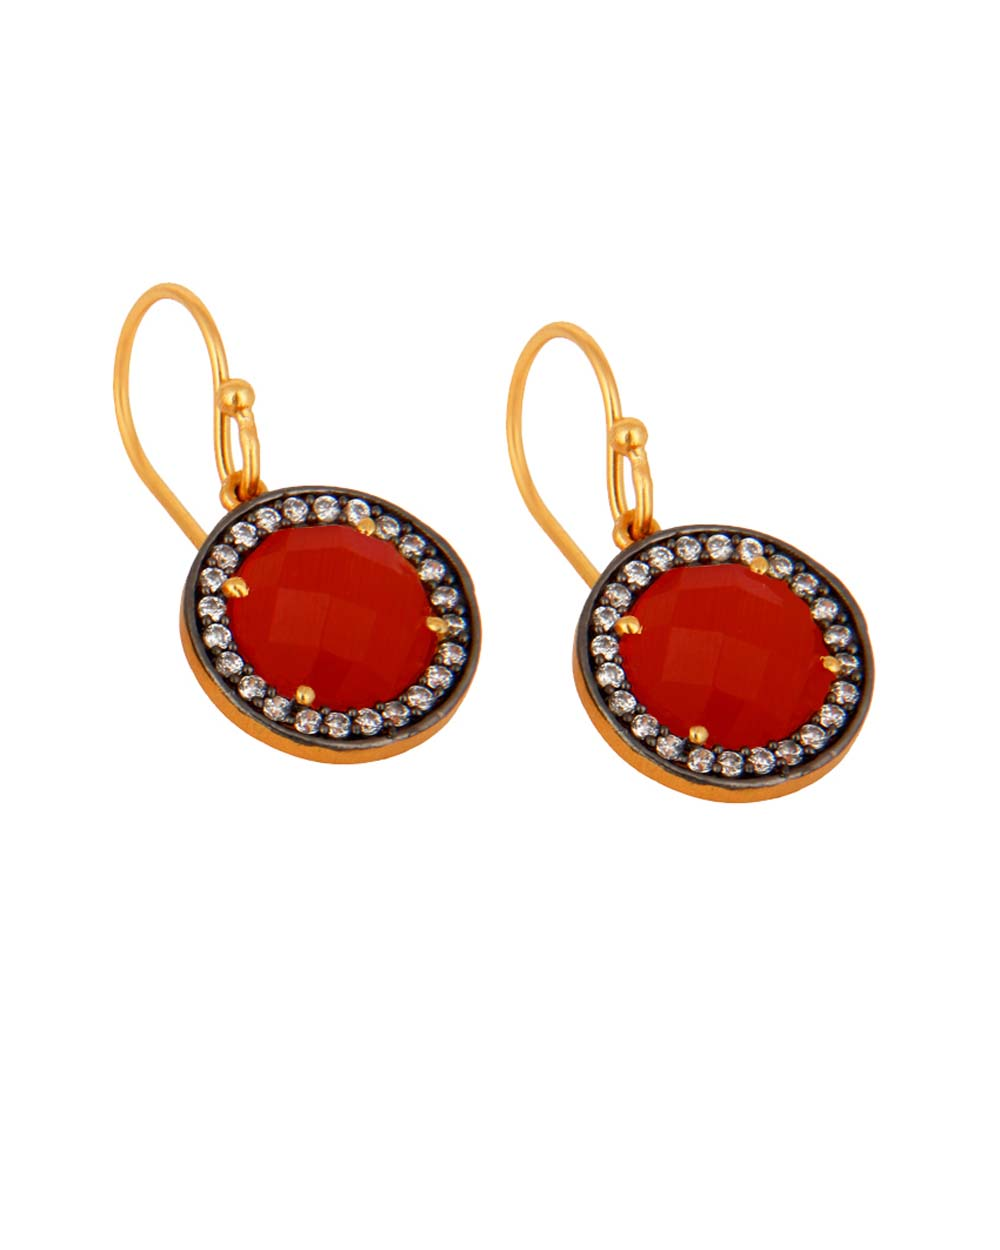 Halo Red Onyx and White Topaz Pave Earrings in Gold Vermeil